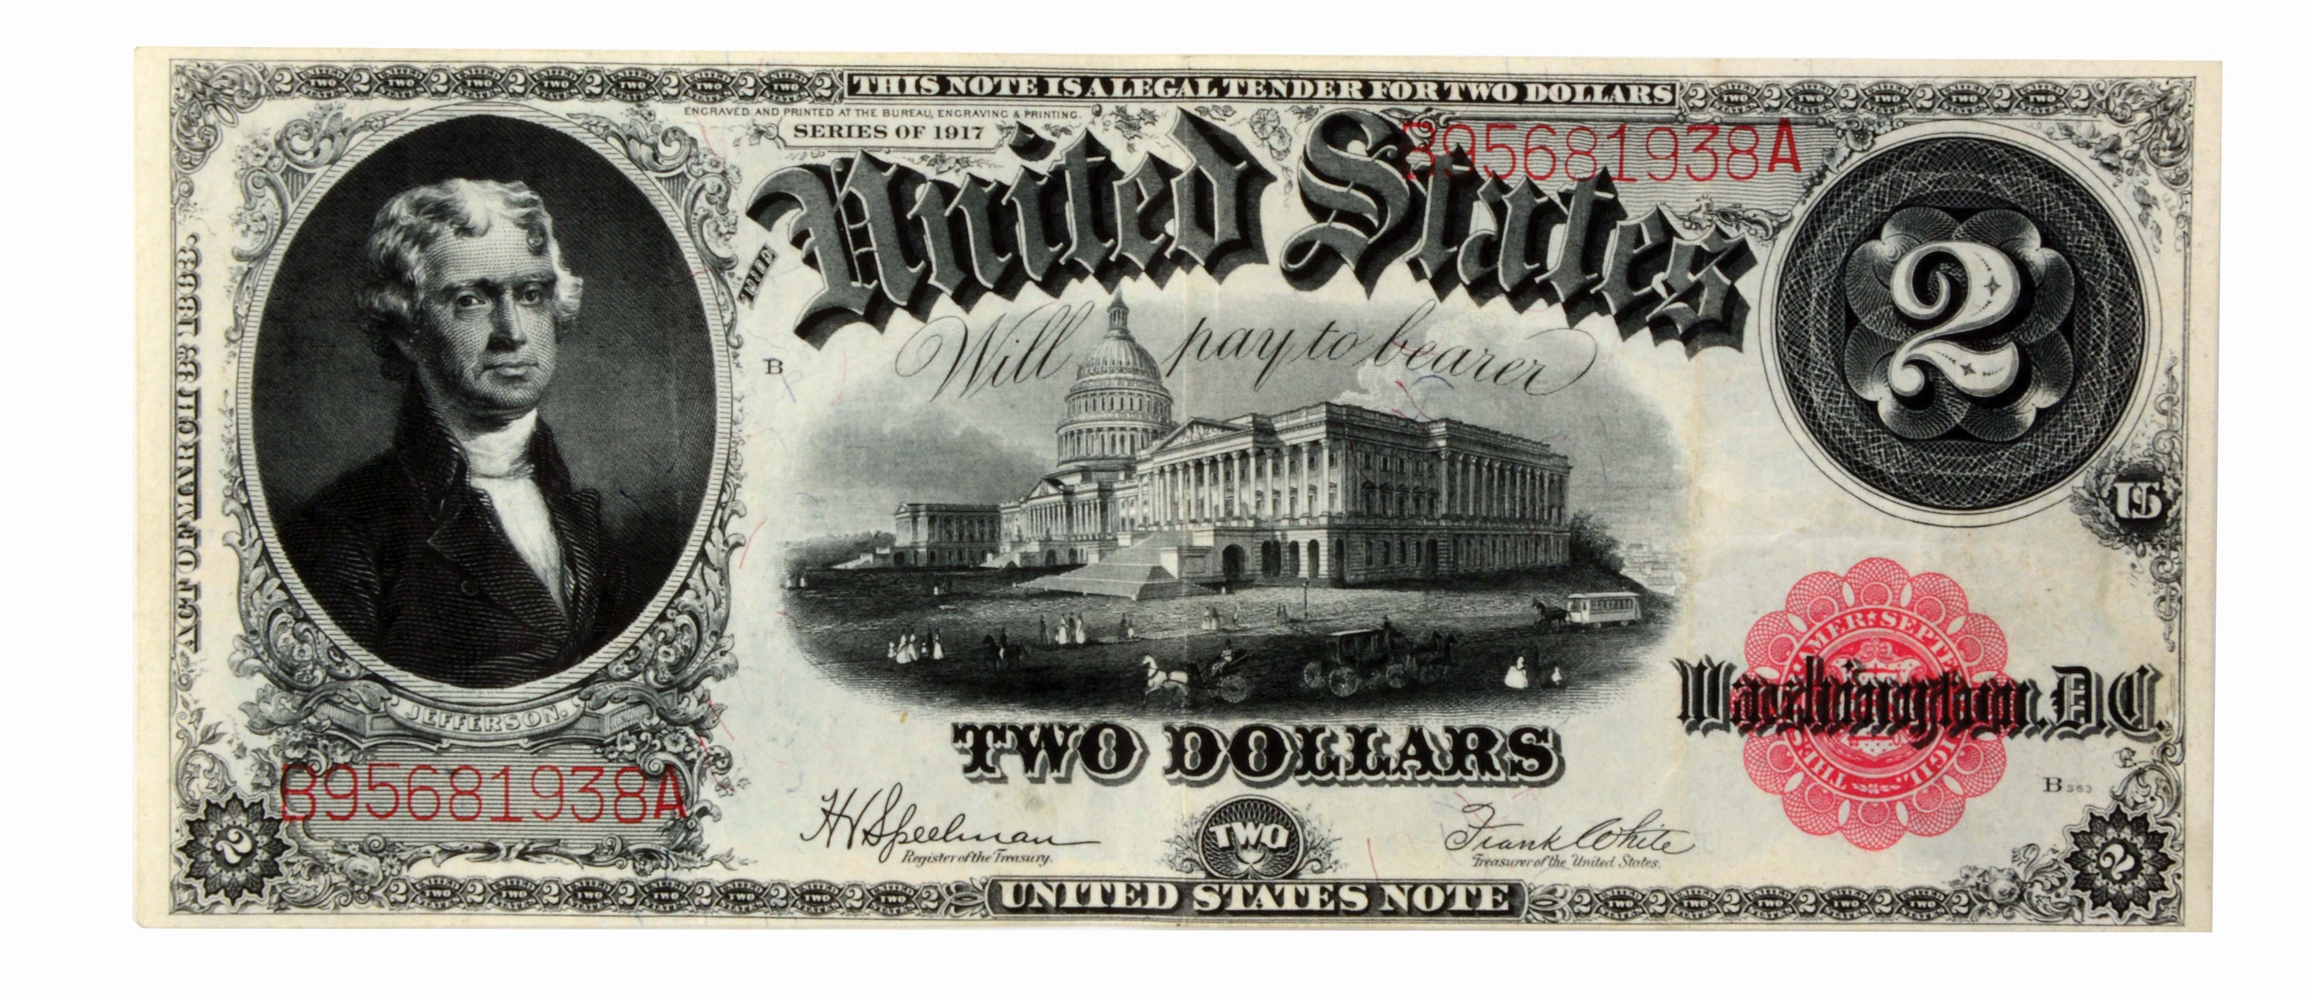 $2.00 1917 United States Note FR 60.